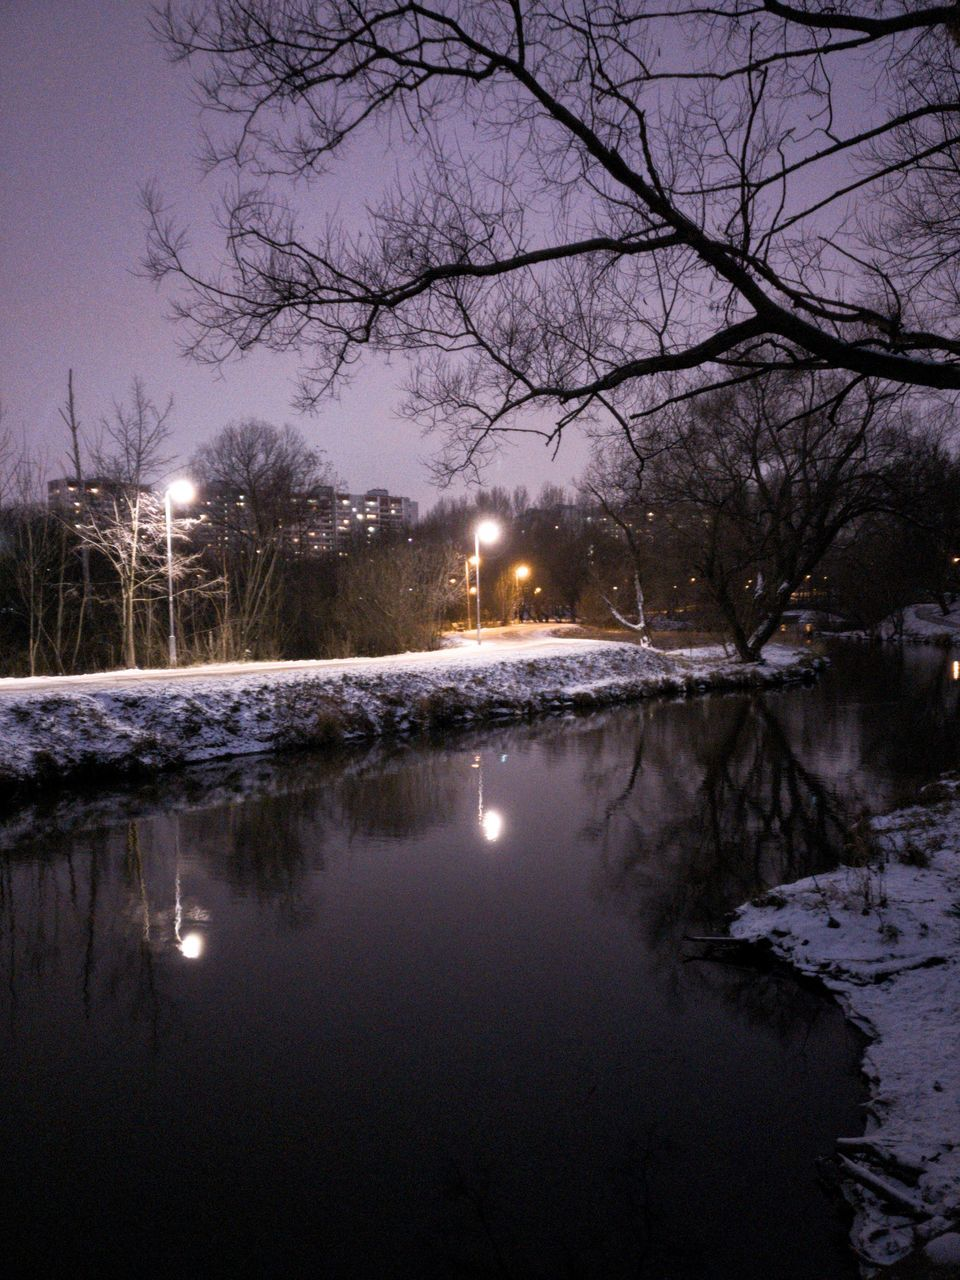 illuminated, night, winter, snow, reflection, bare tree, tree, cold temperature, nature, water, moon, beauty in nature, frozen, sky, outdoors, no people, lake, scenics, branch, star - space, astronomy